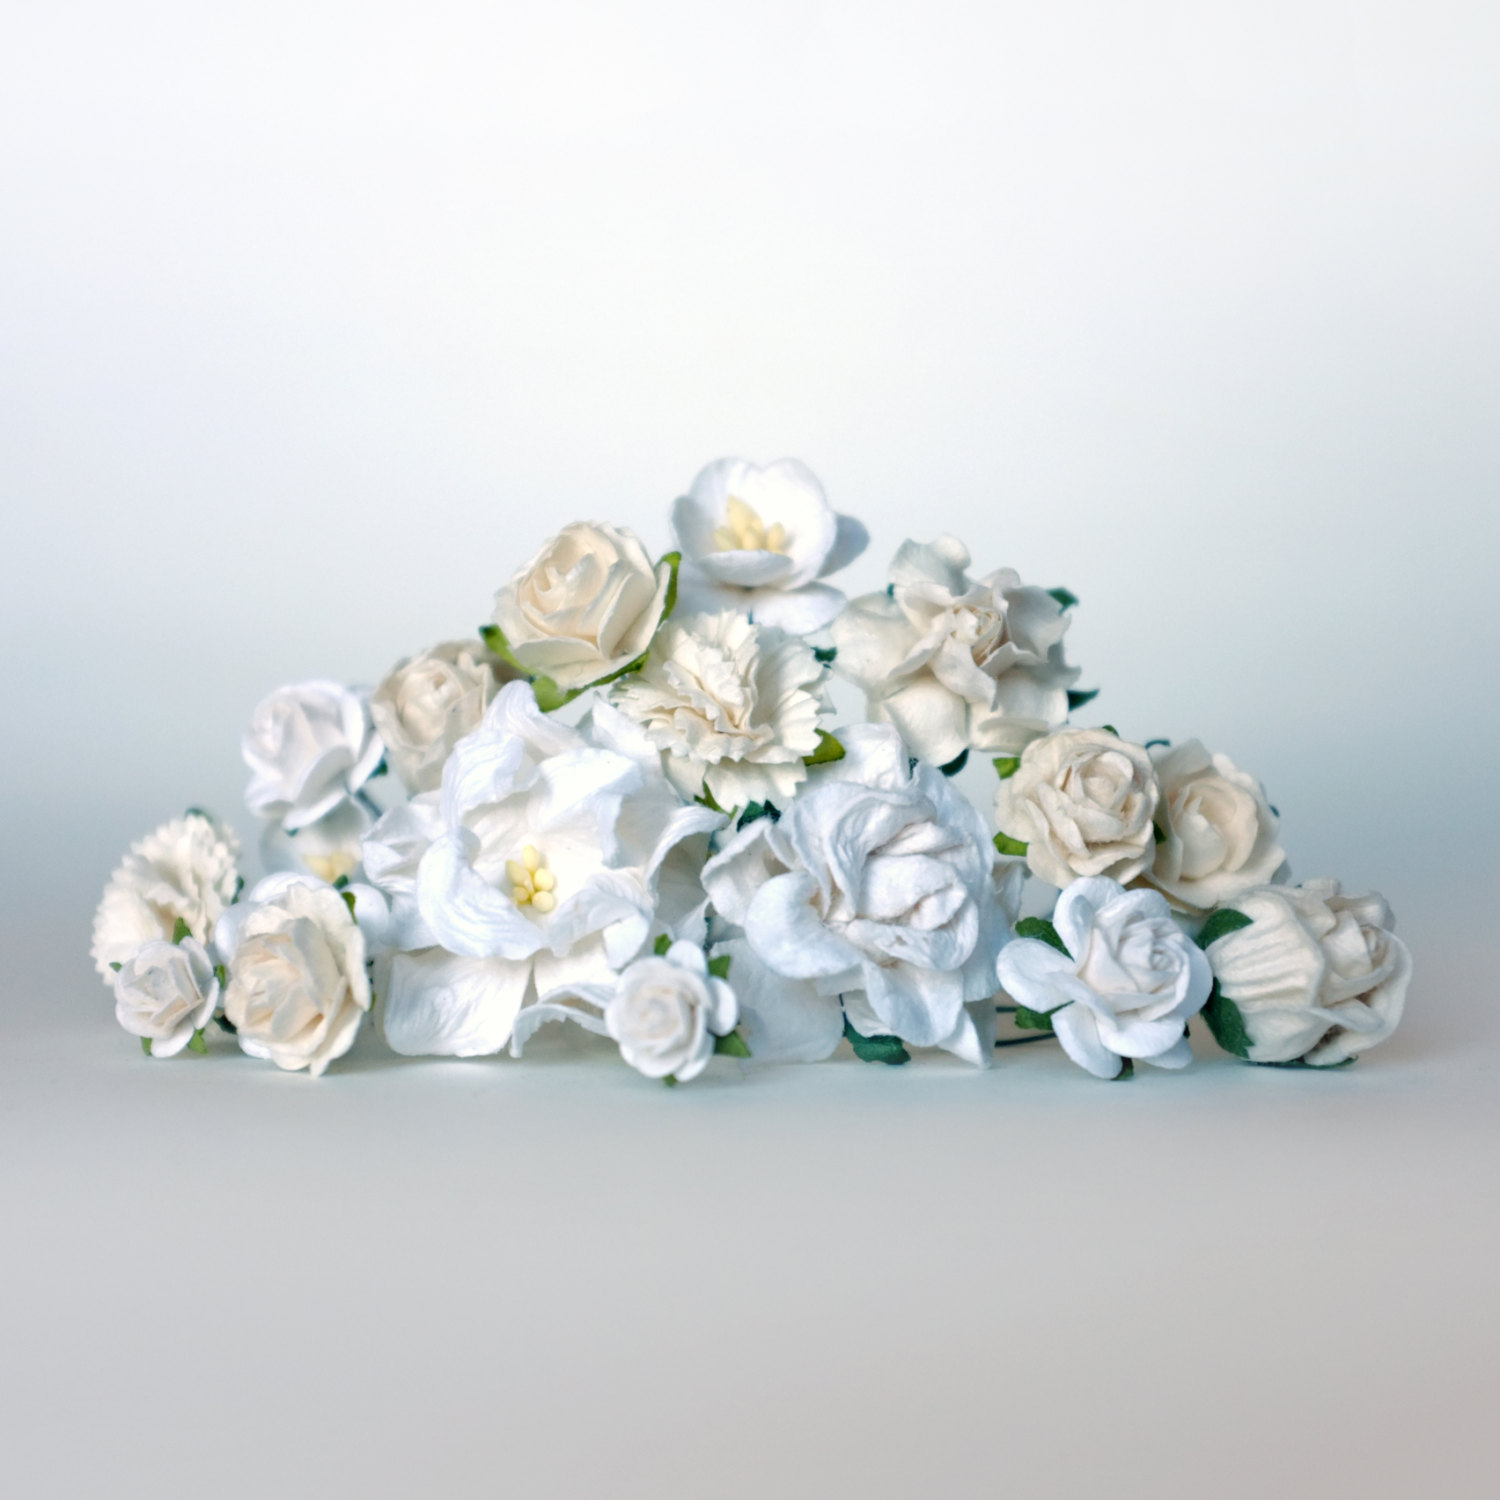 White Flowers DIY Flower Crown Kit - Pop Shop America